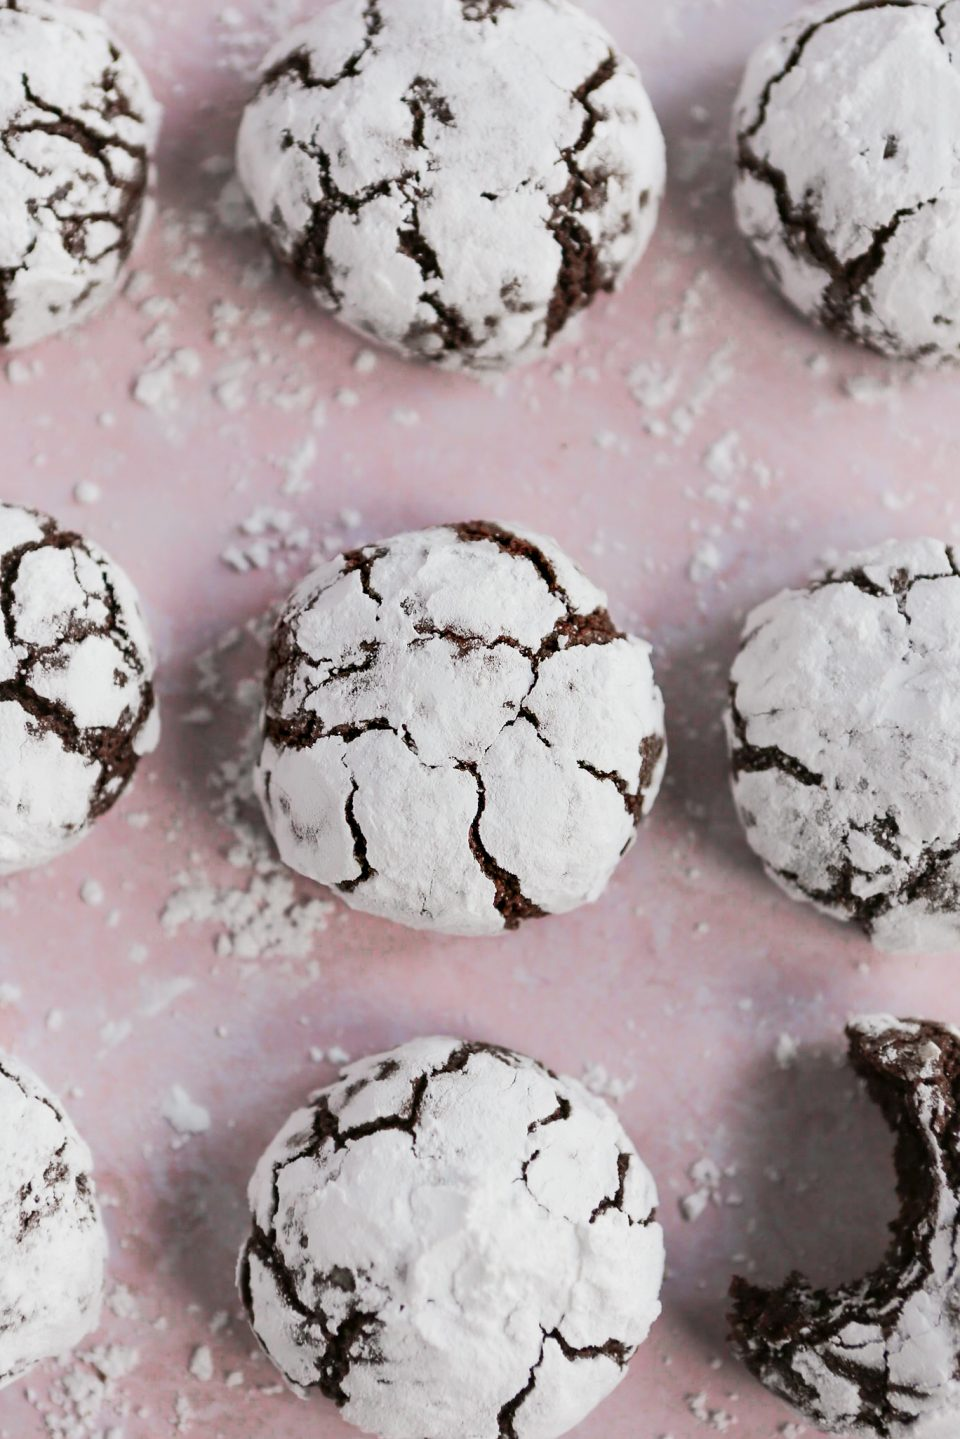 Overhead shot of chocolate crinkles cookies covered in powdered sugar. There are three rows of three cookies with powdered sugar scattered around the pink background the cookies are on.